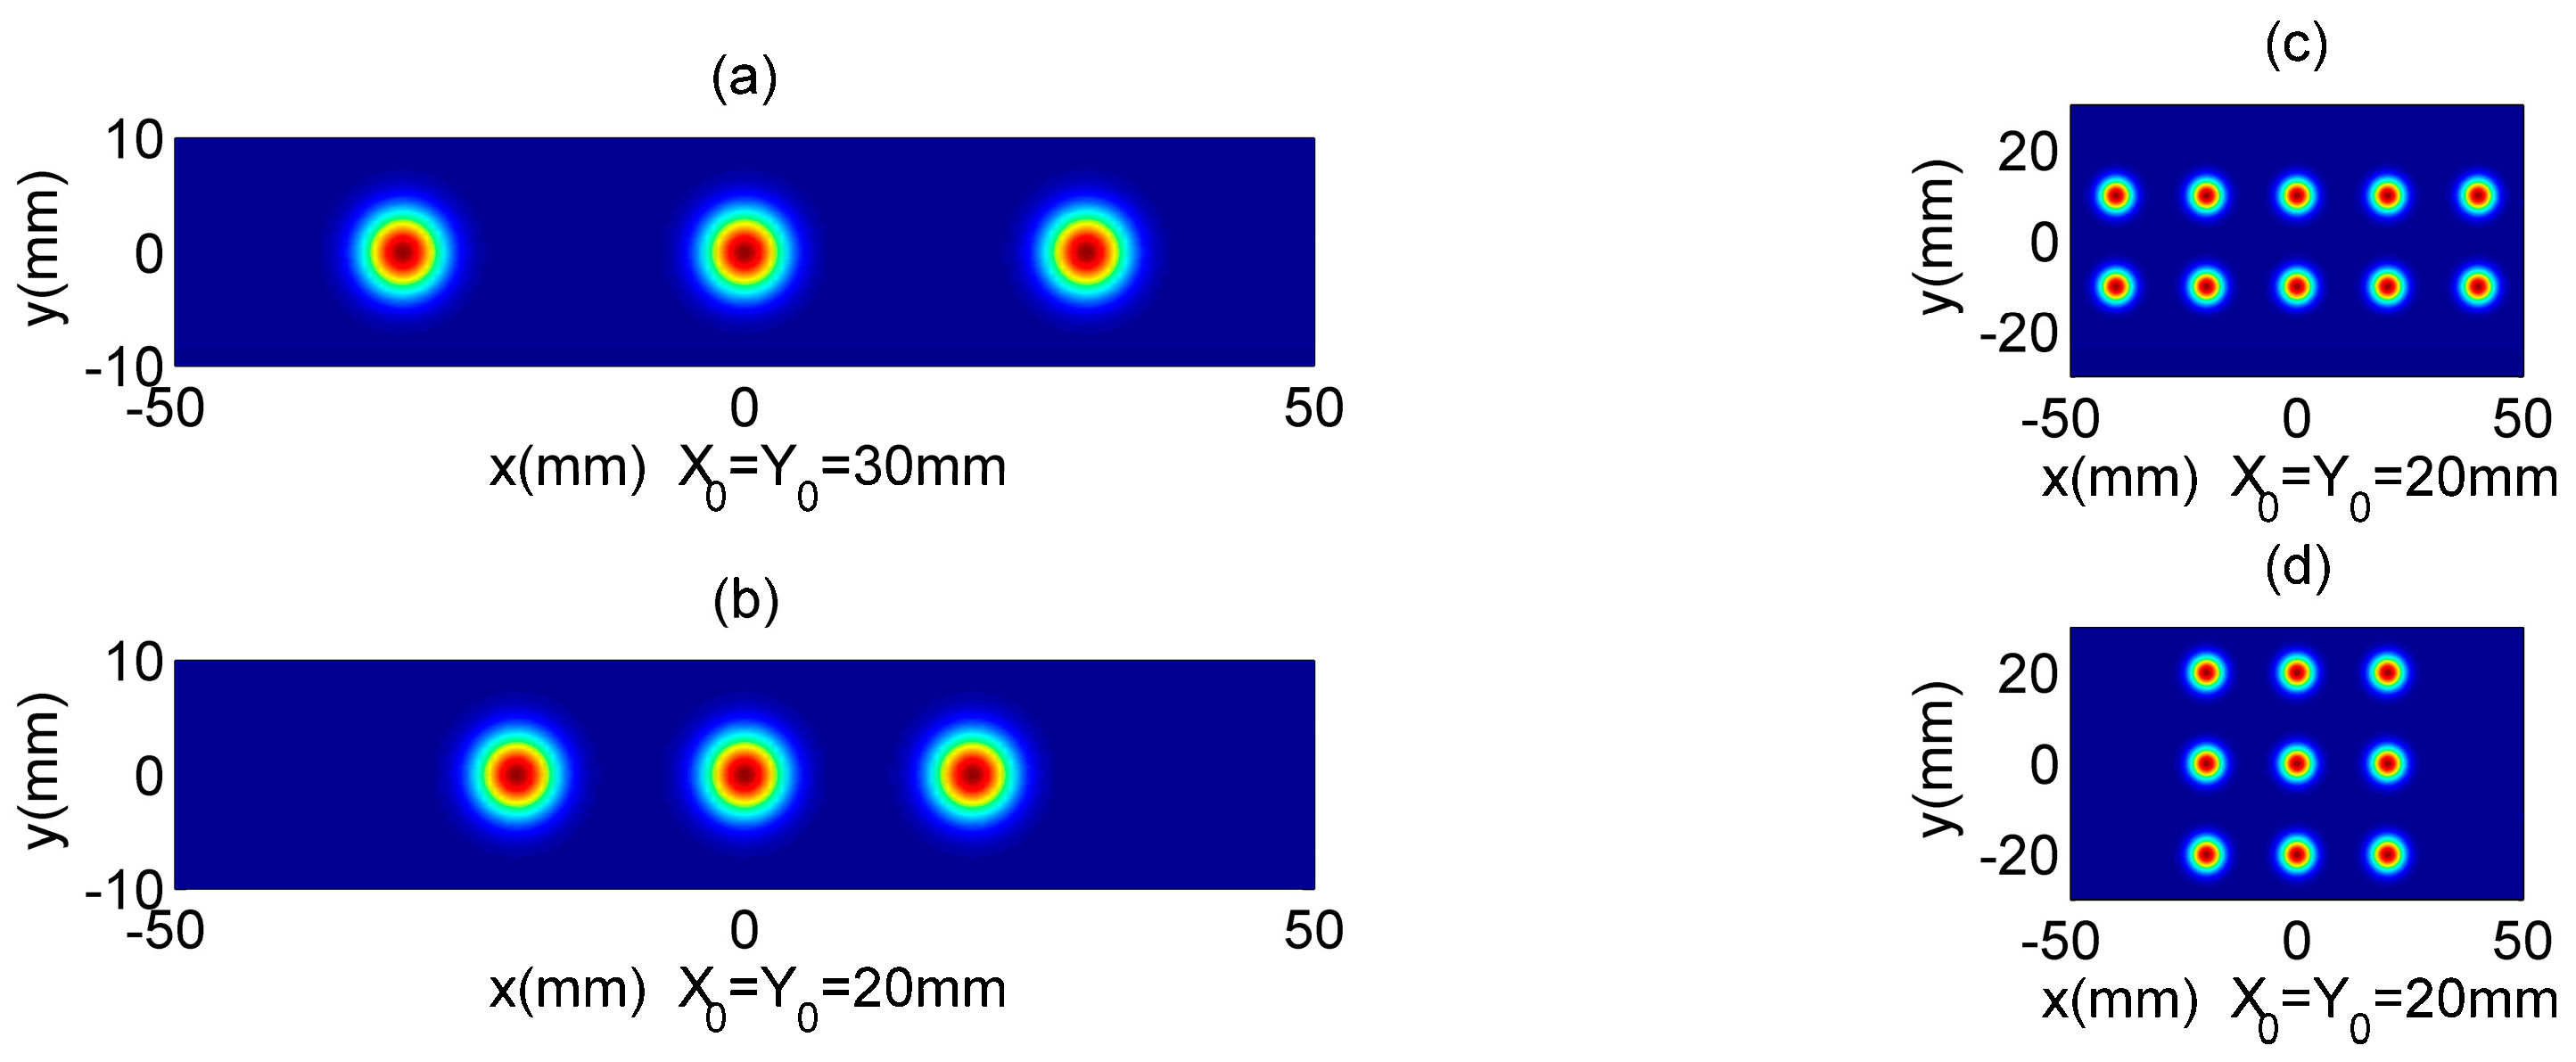 Applied Sciences Free Full Text Propagation Of Rectangular Multi Gaussian Schell Model Array Beams Through Free Space And Non Kolmogorov Turbulence Html